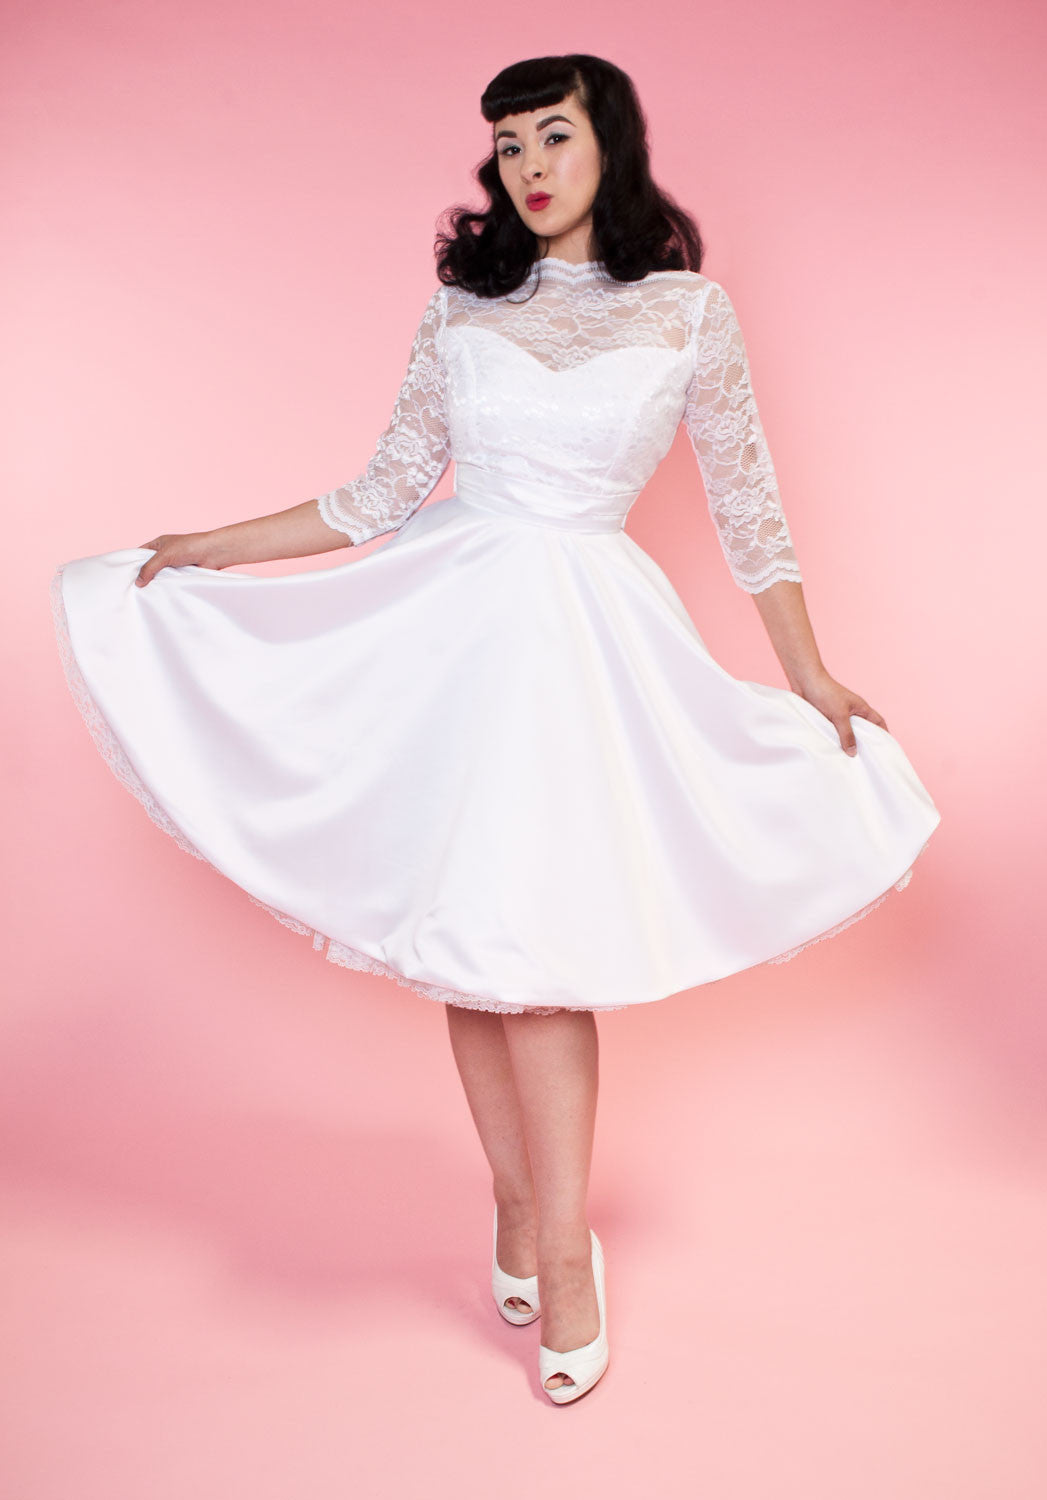 BP Collette Dress - White Lace - Heart of Haute  - 2